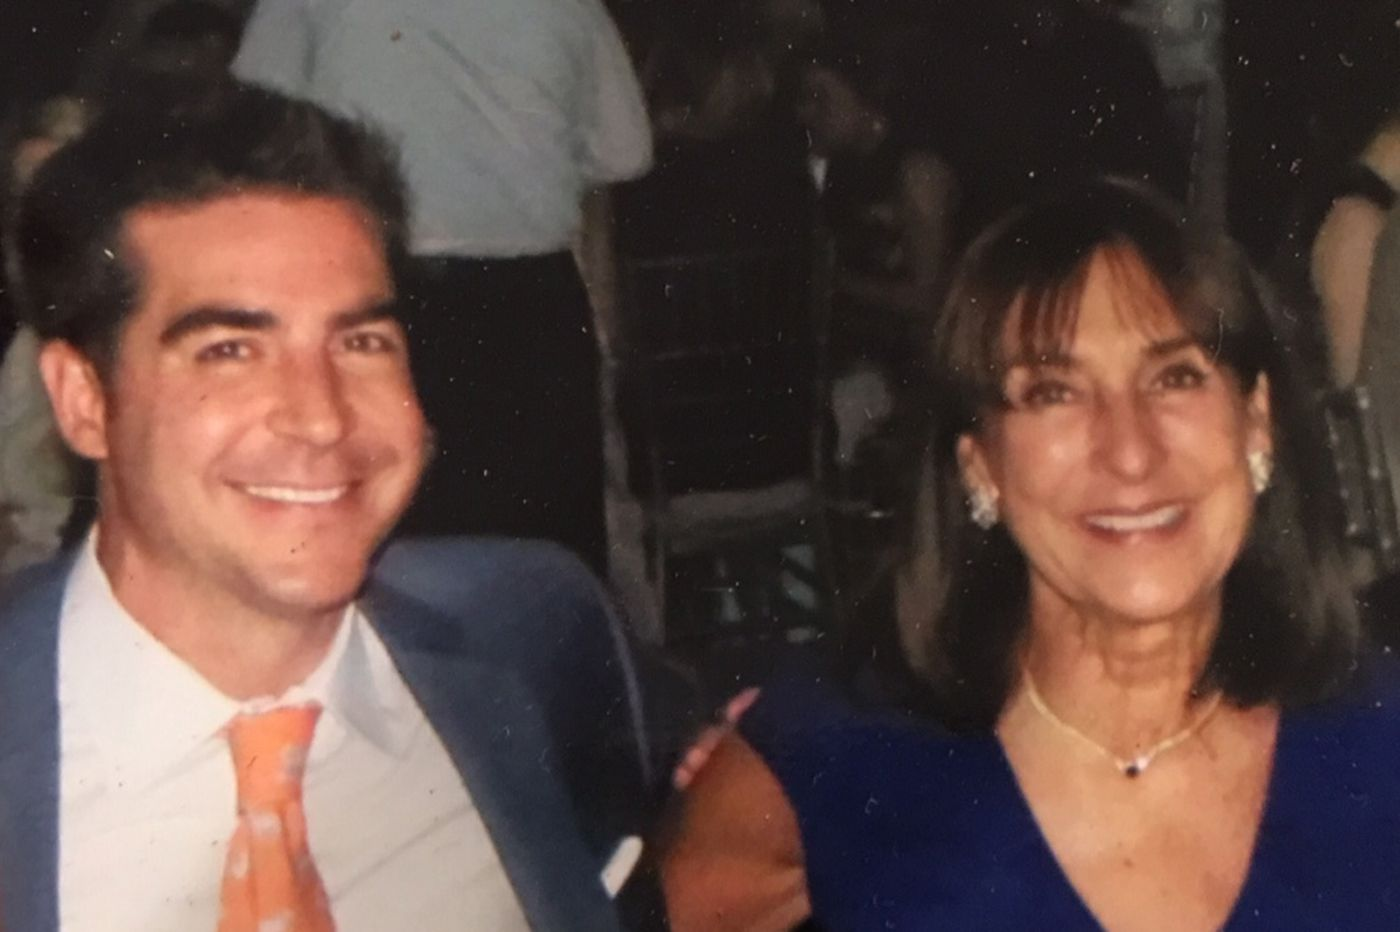 Fox News host and Philly native Jesse Watters' liberal mom is his most-frequent critic